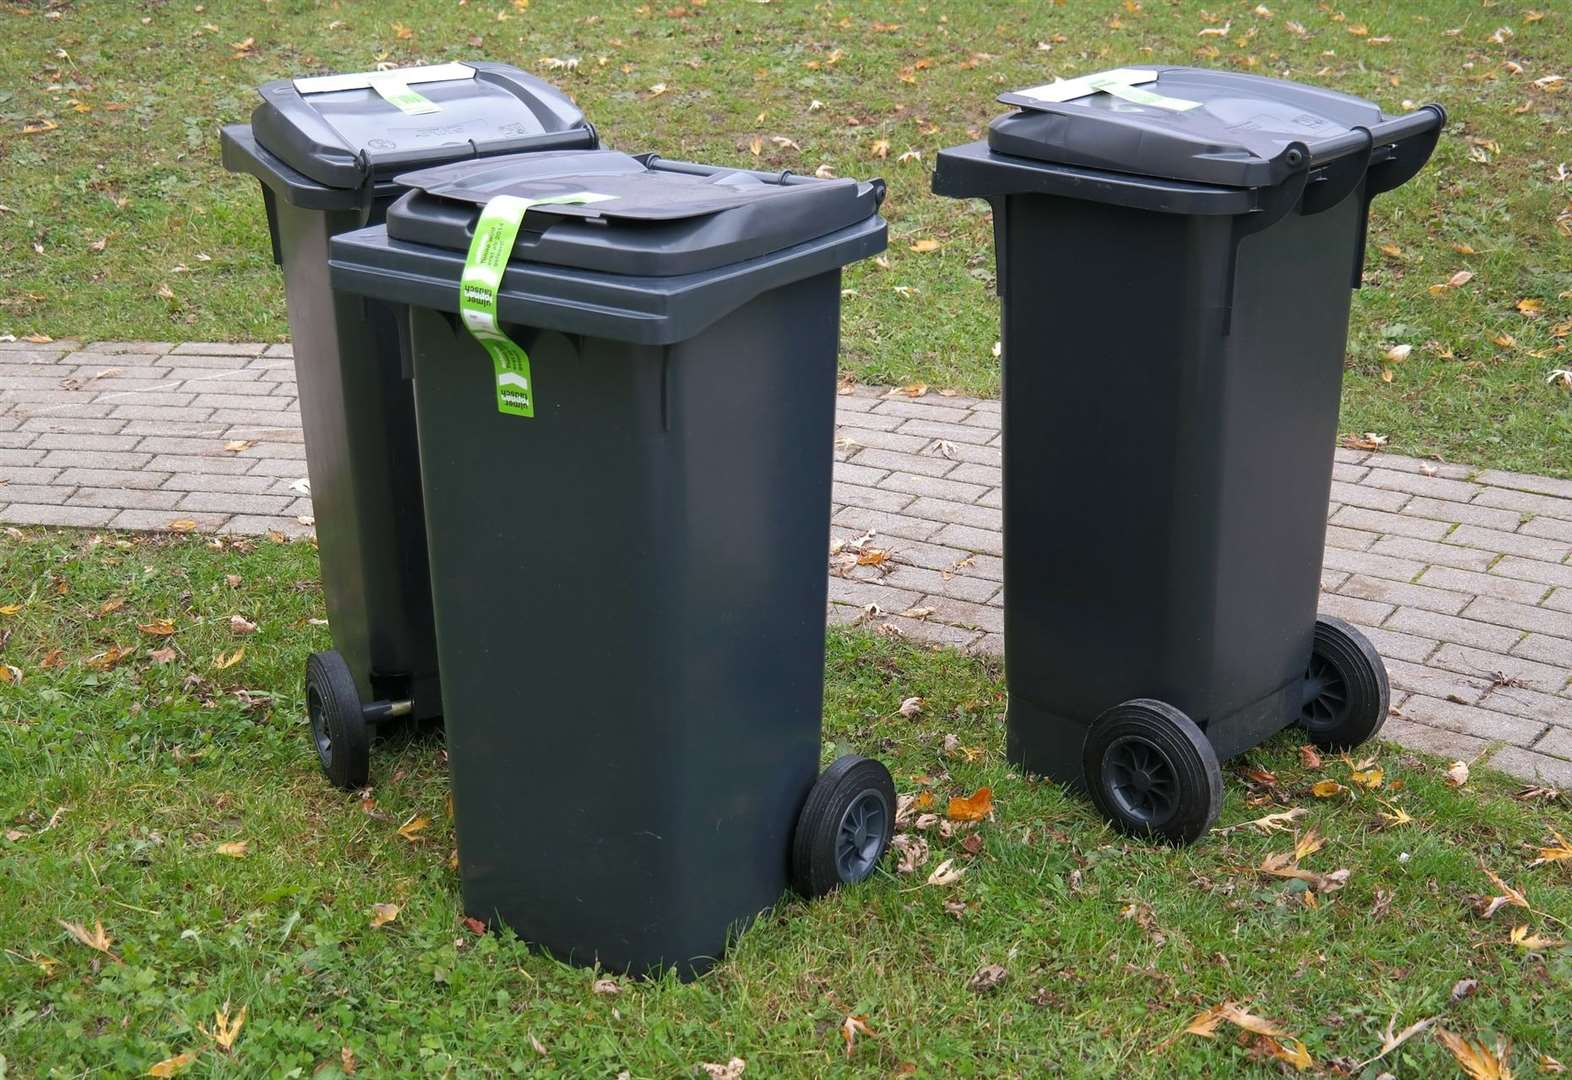 Bin collection days change for 1,700 households in Mid Suffolk and Babergh